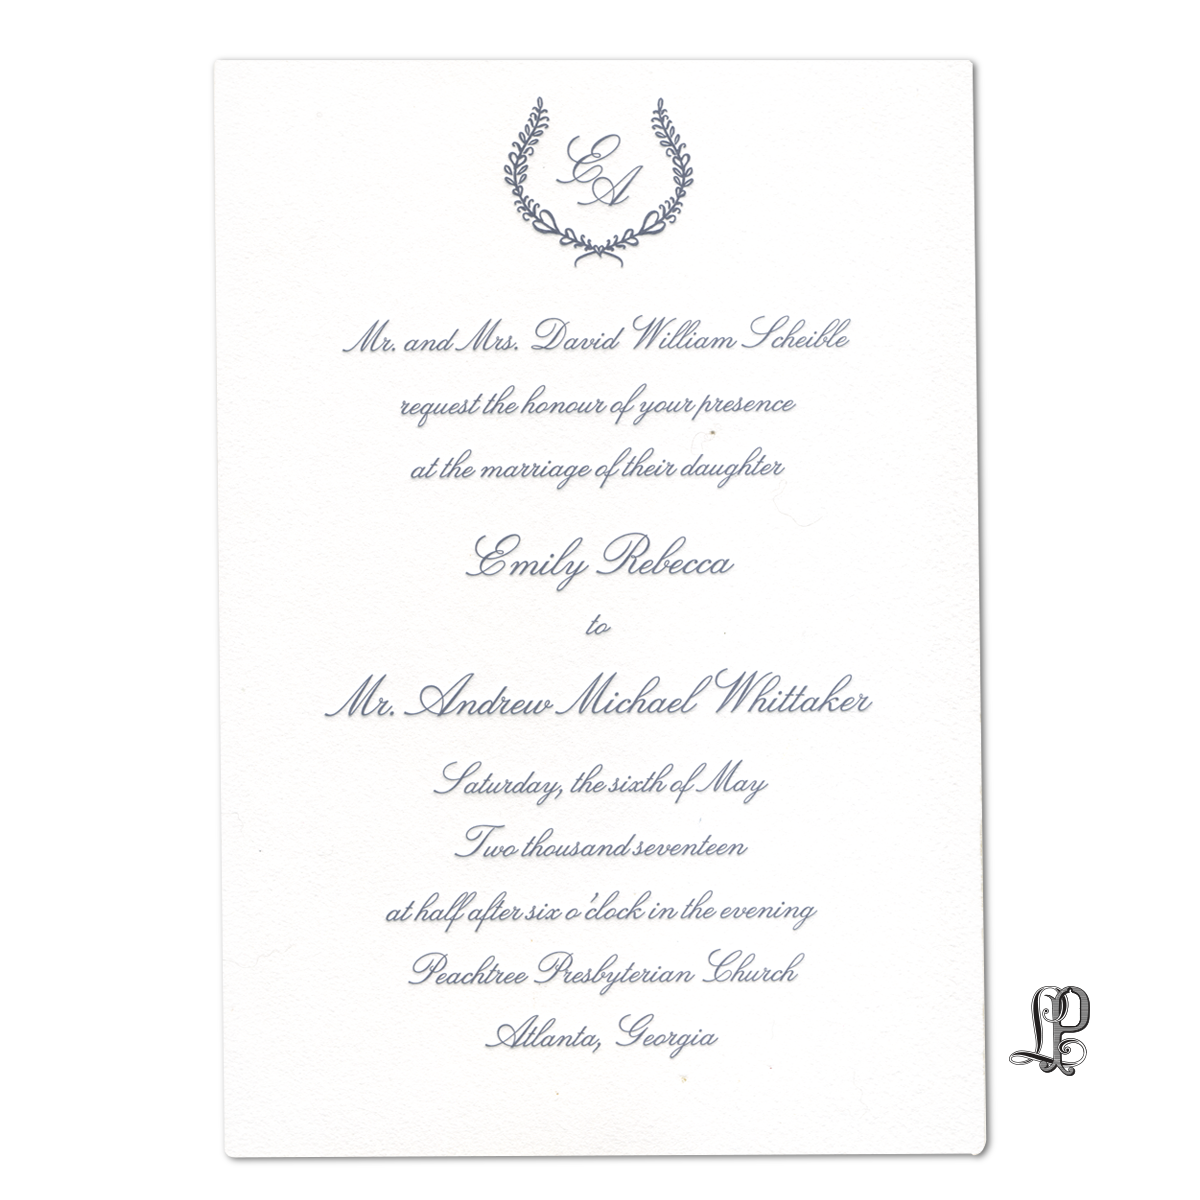 invitations wedding 2 — Letter Perfect Stationery